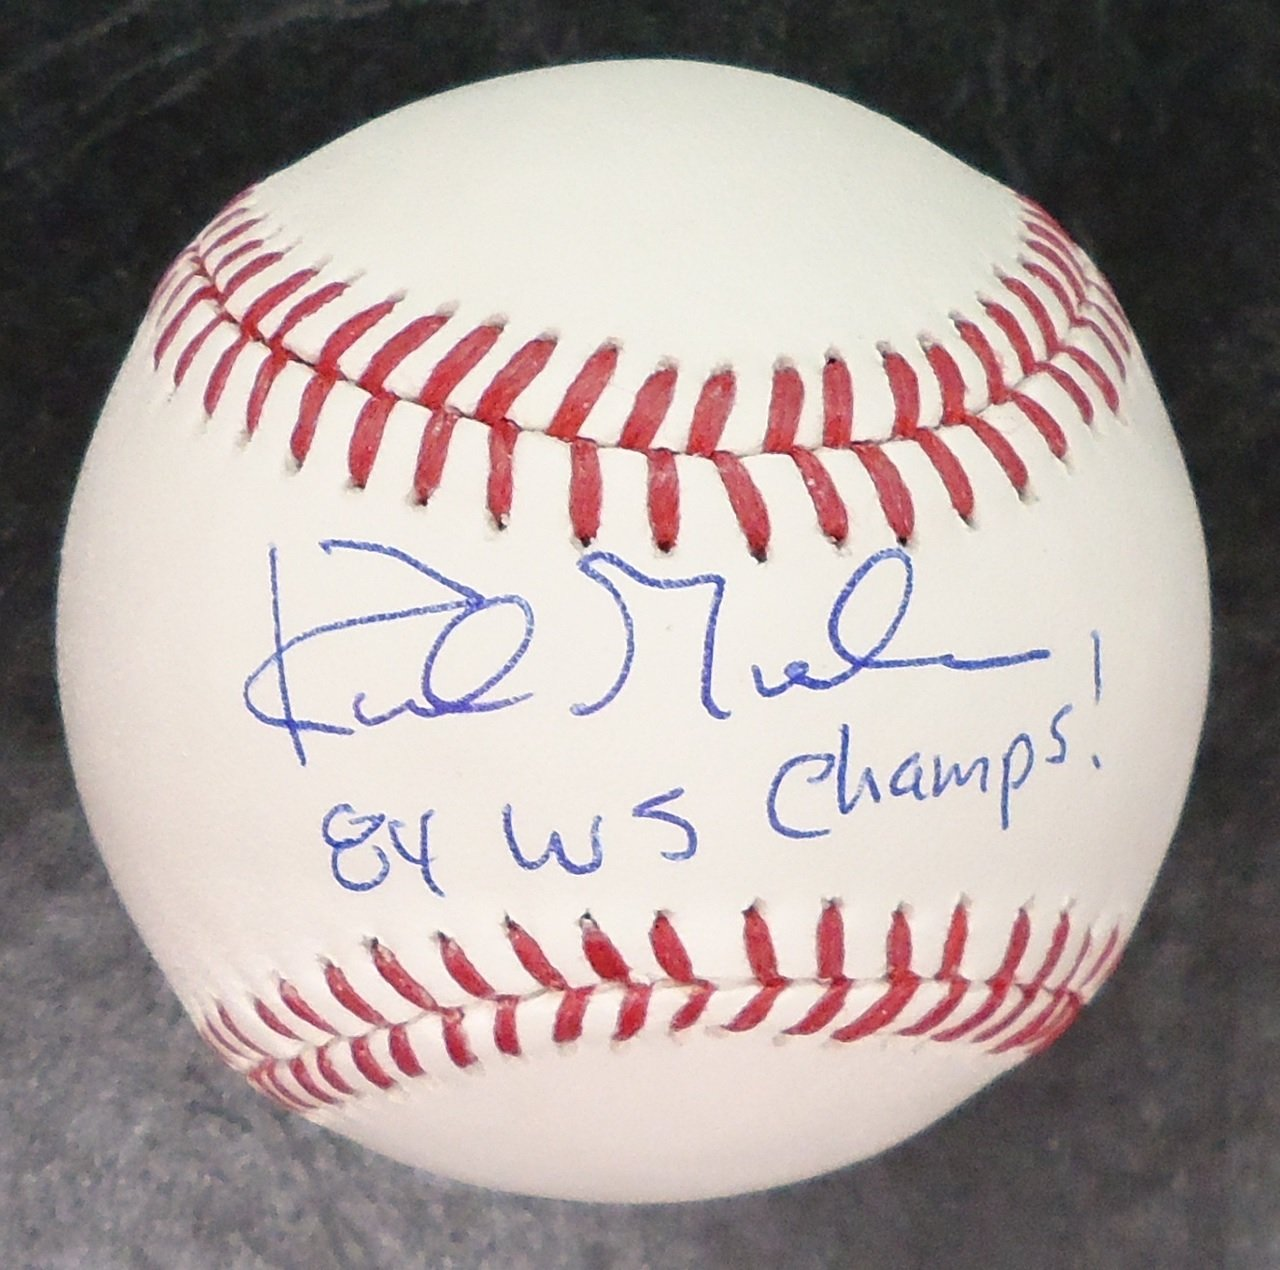 KIRK GIBSON AUTOGRAPHED BASEBALL - OFFICIAL MAJOR LEAGUE BALL W/ '84 WS CHAMPS' Detroit City Sports